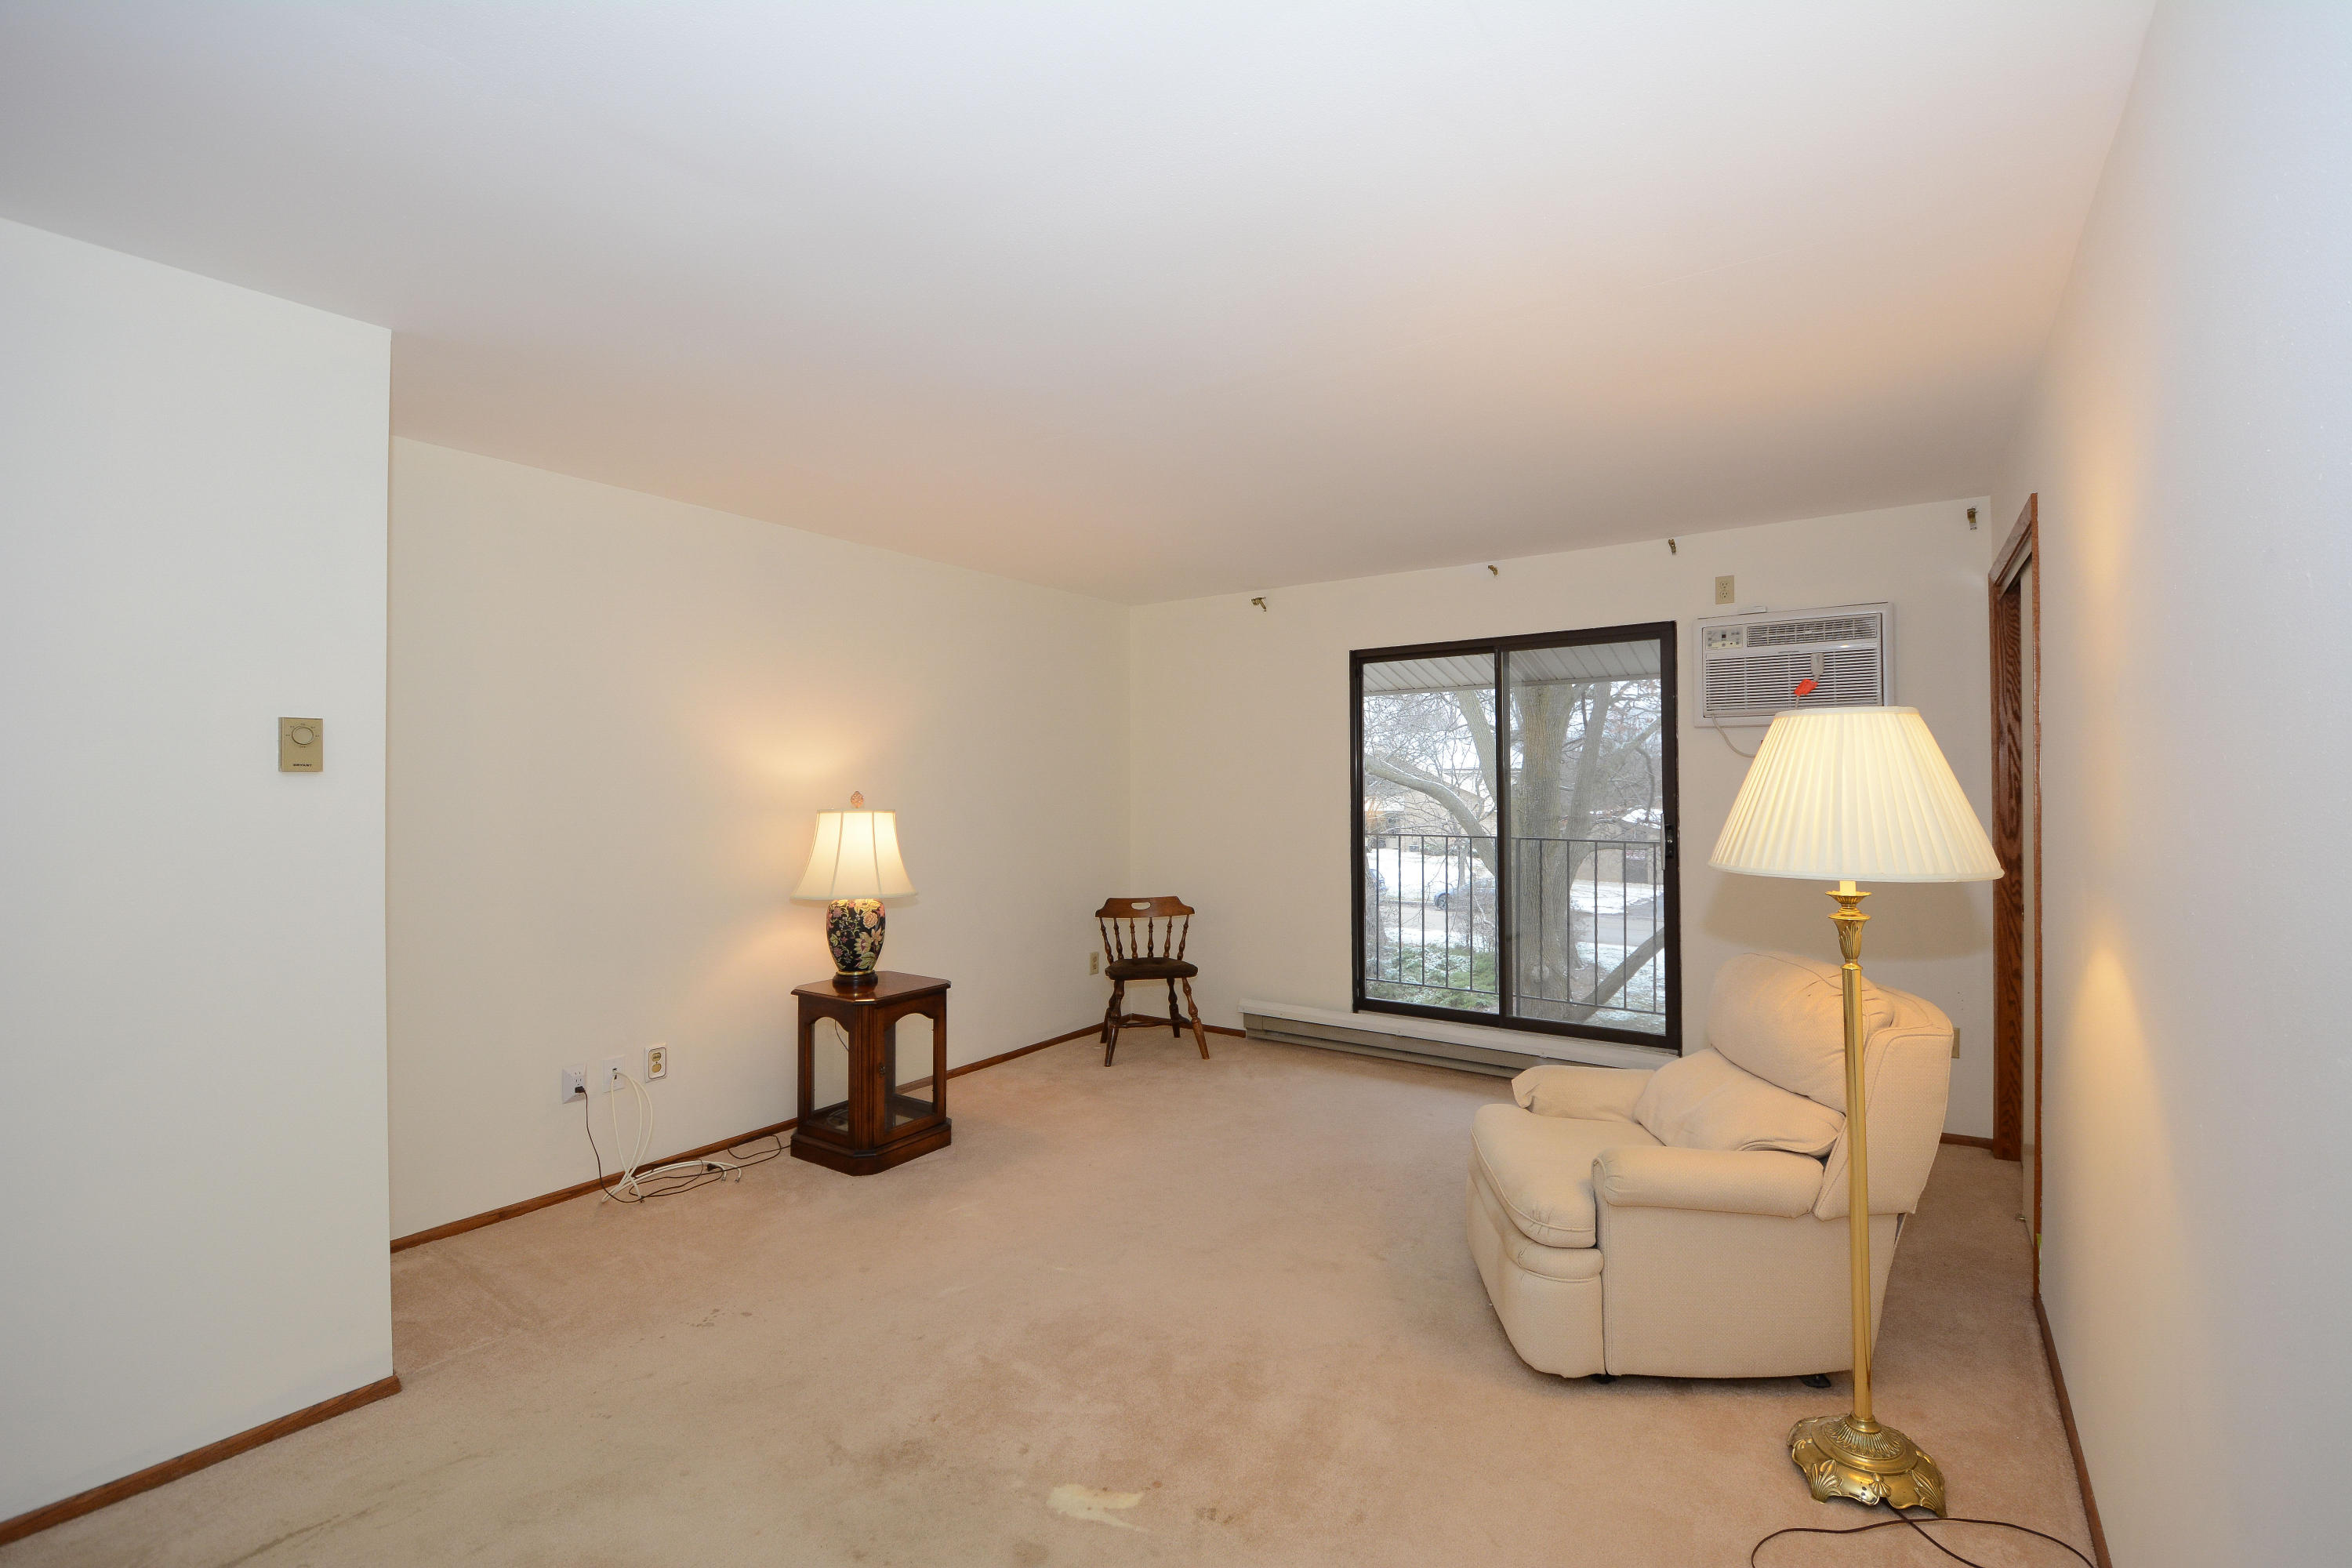 1684 S Carriage Ln, #D, New Berlin, WI 53151